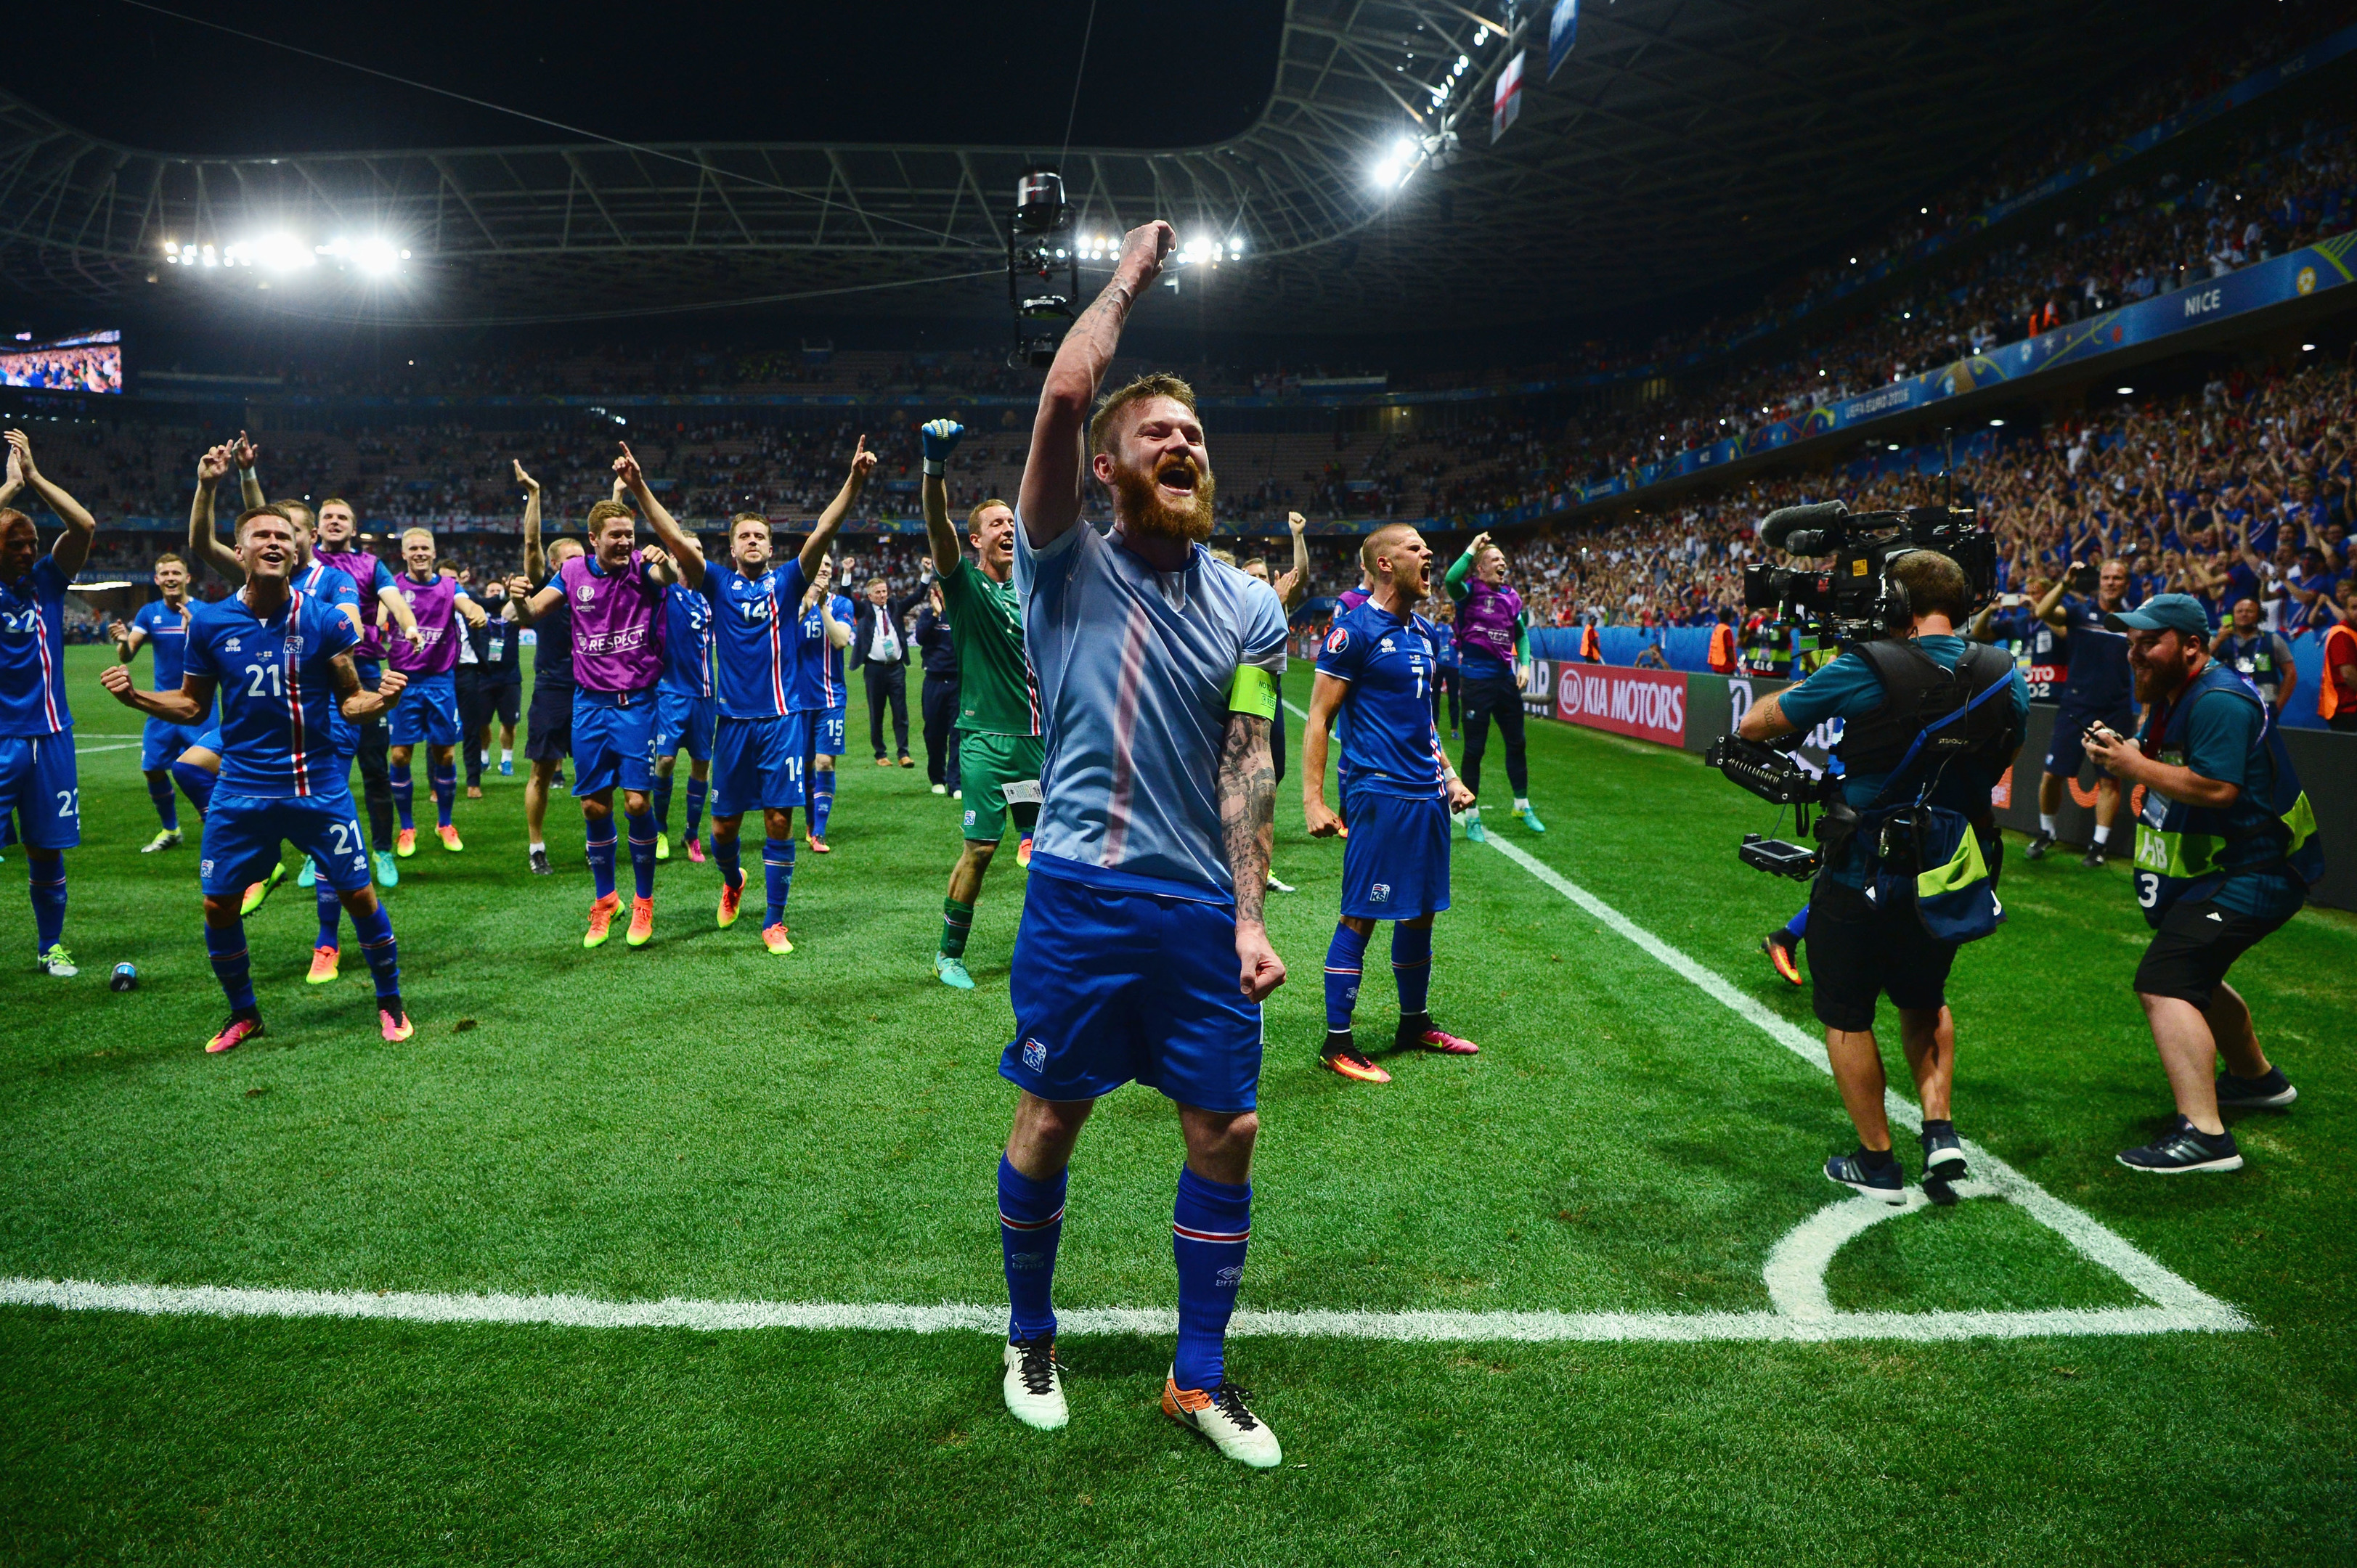 Aron Gunnarsson (C) and Iceland players celebrate their team's 2-1 win over England (Dan Mullan/Getty Images)